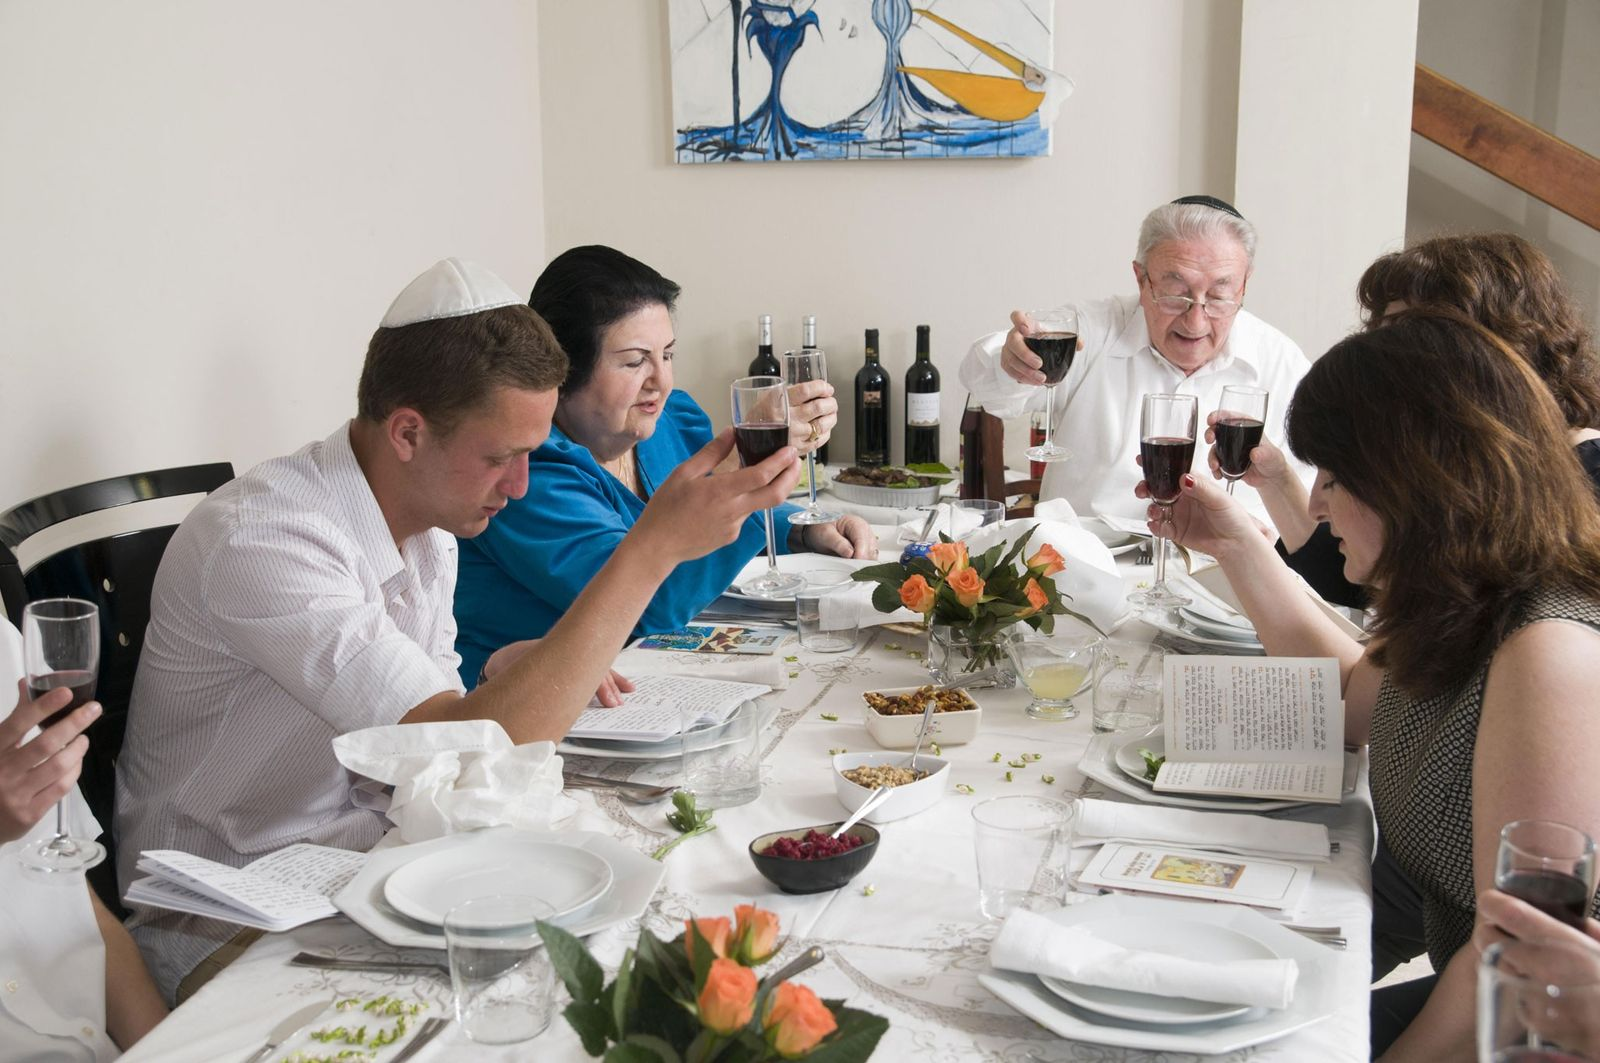 A brief history of Passover, which honours resilience amid adversity